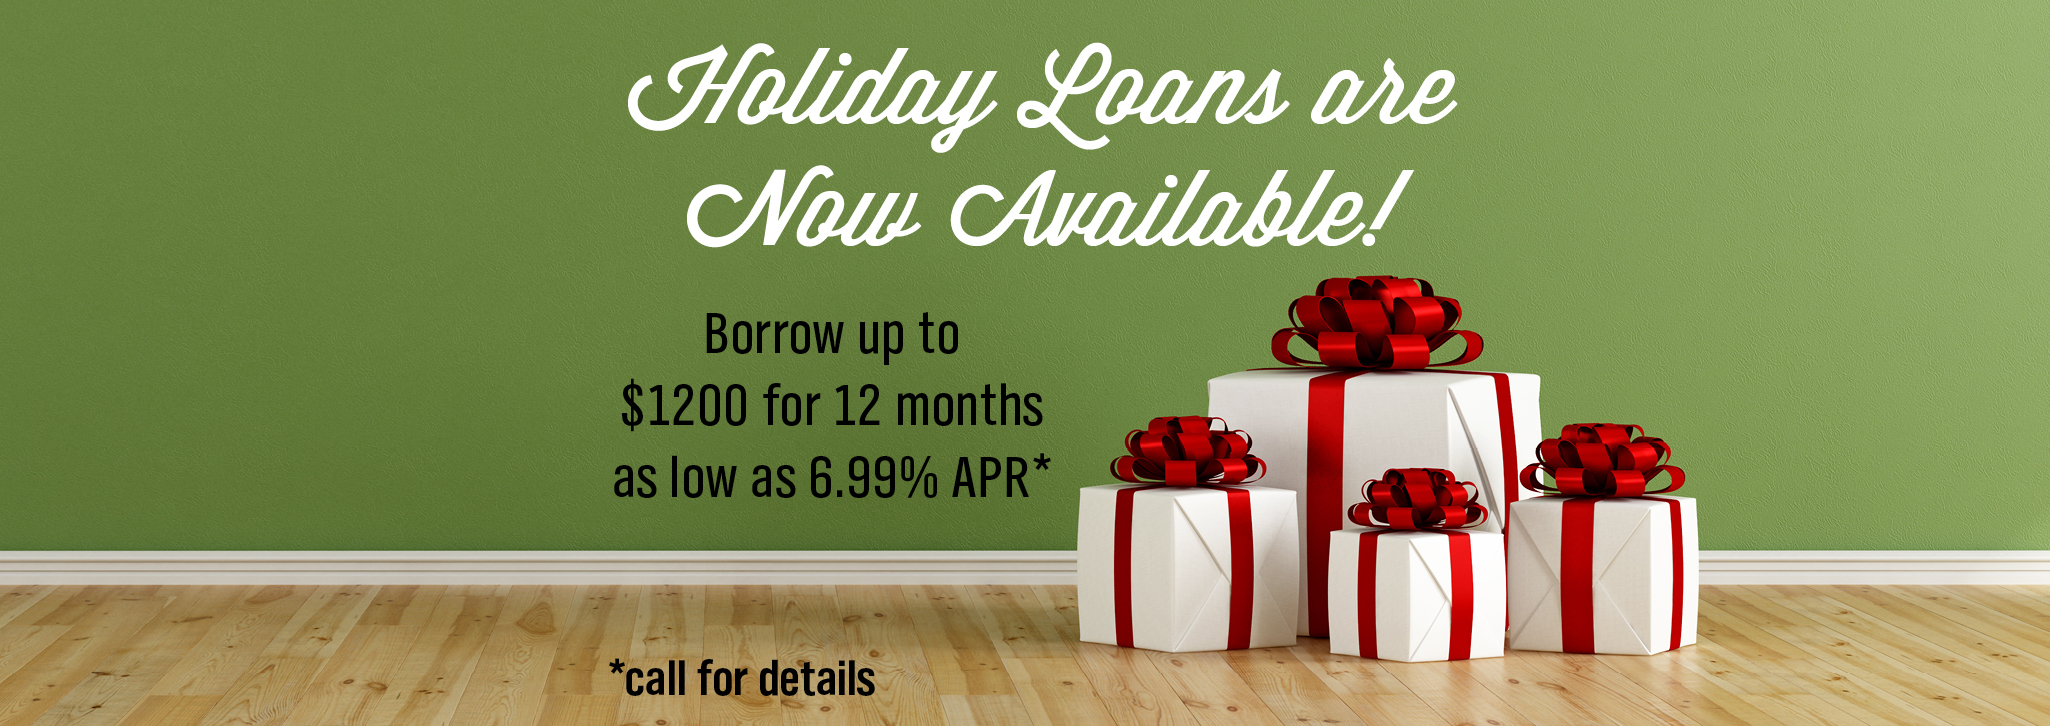 Holiday Loans are Now Available!